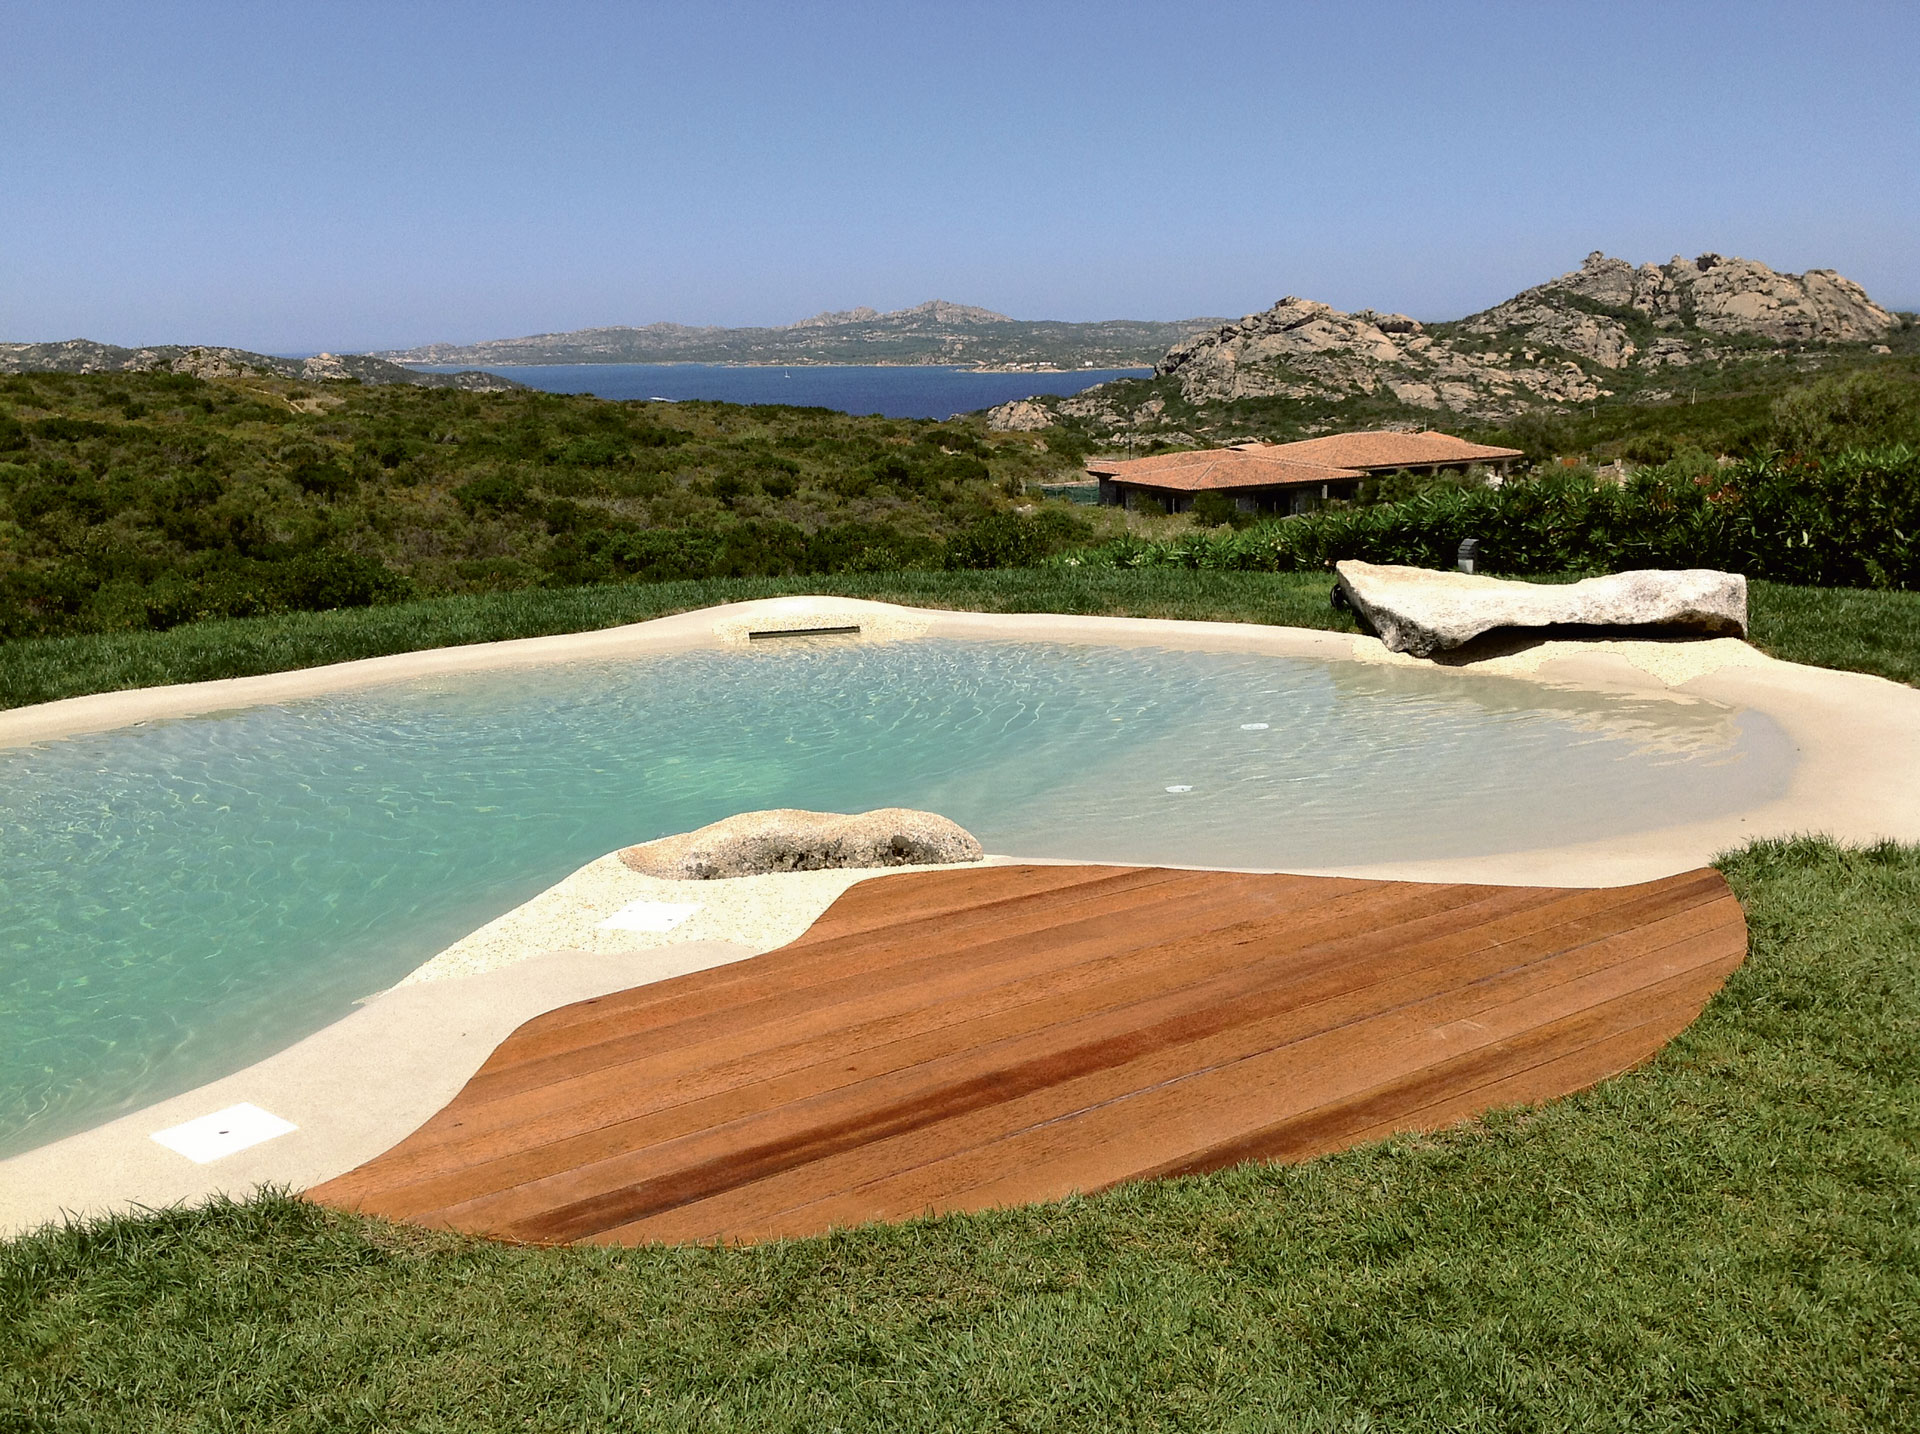 Gallery private swimming pools piscine bio design for Piscine biodesign